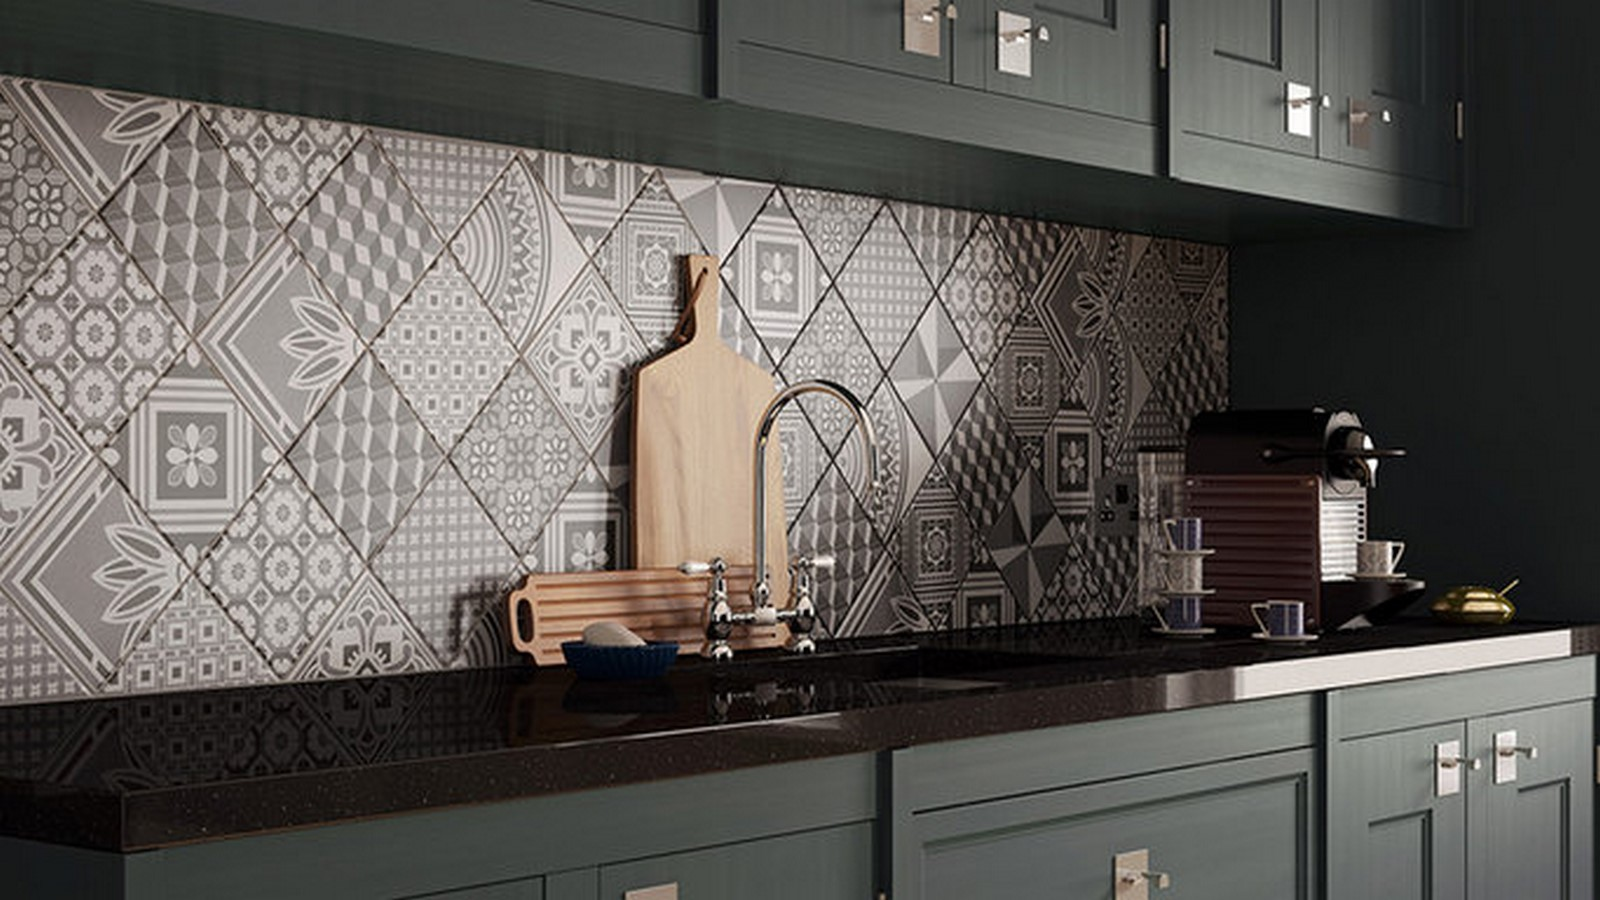 10 Kitchen details everyone must know about while redesigning - Sheet10